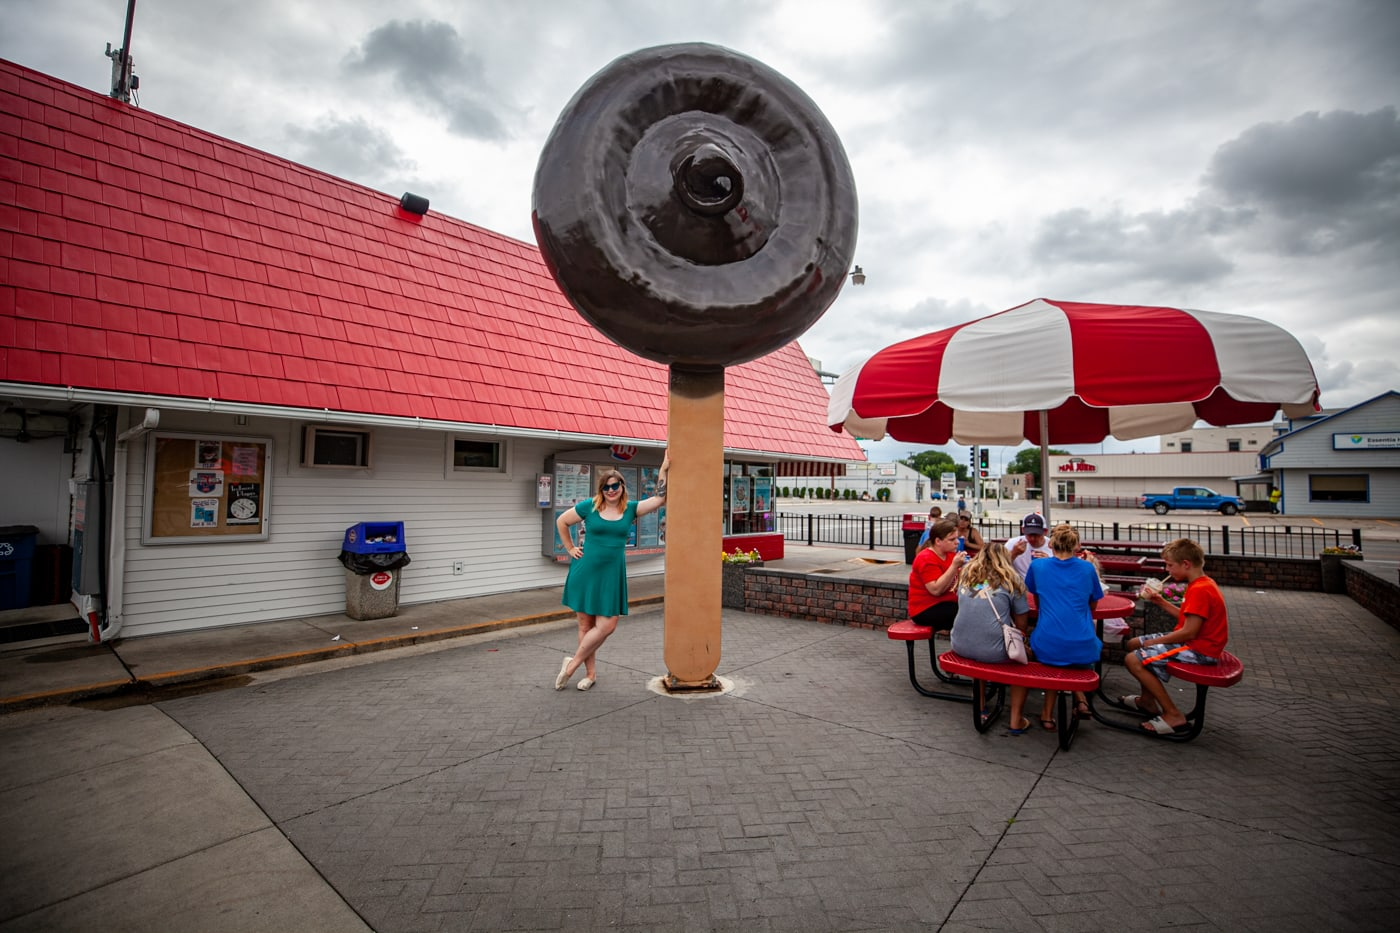 World's Largest Dilly Bar Ice Cream at the Dairy Queen in Moorhead, Minnesota | Minnesota Roadside Attractions